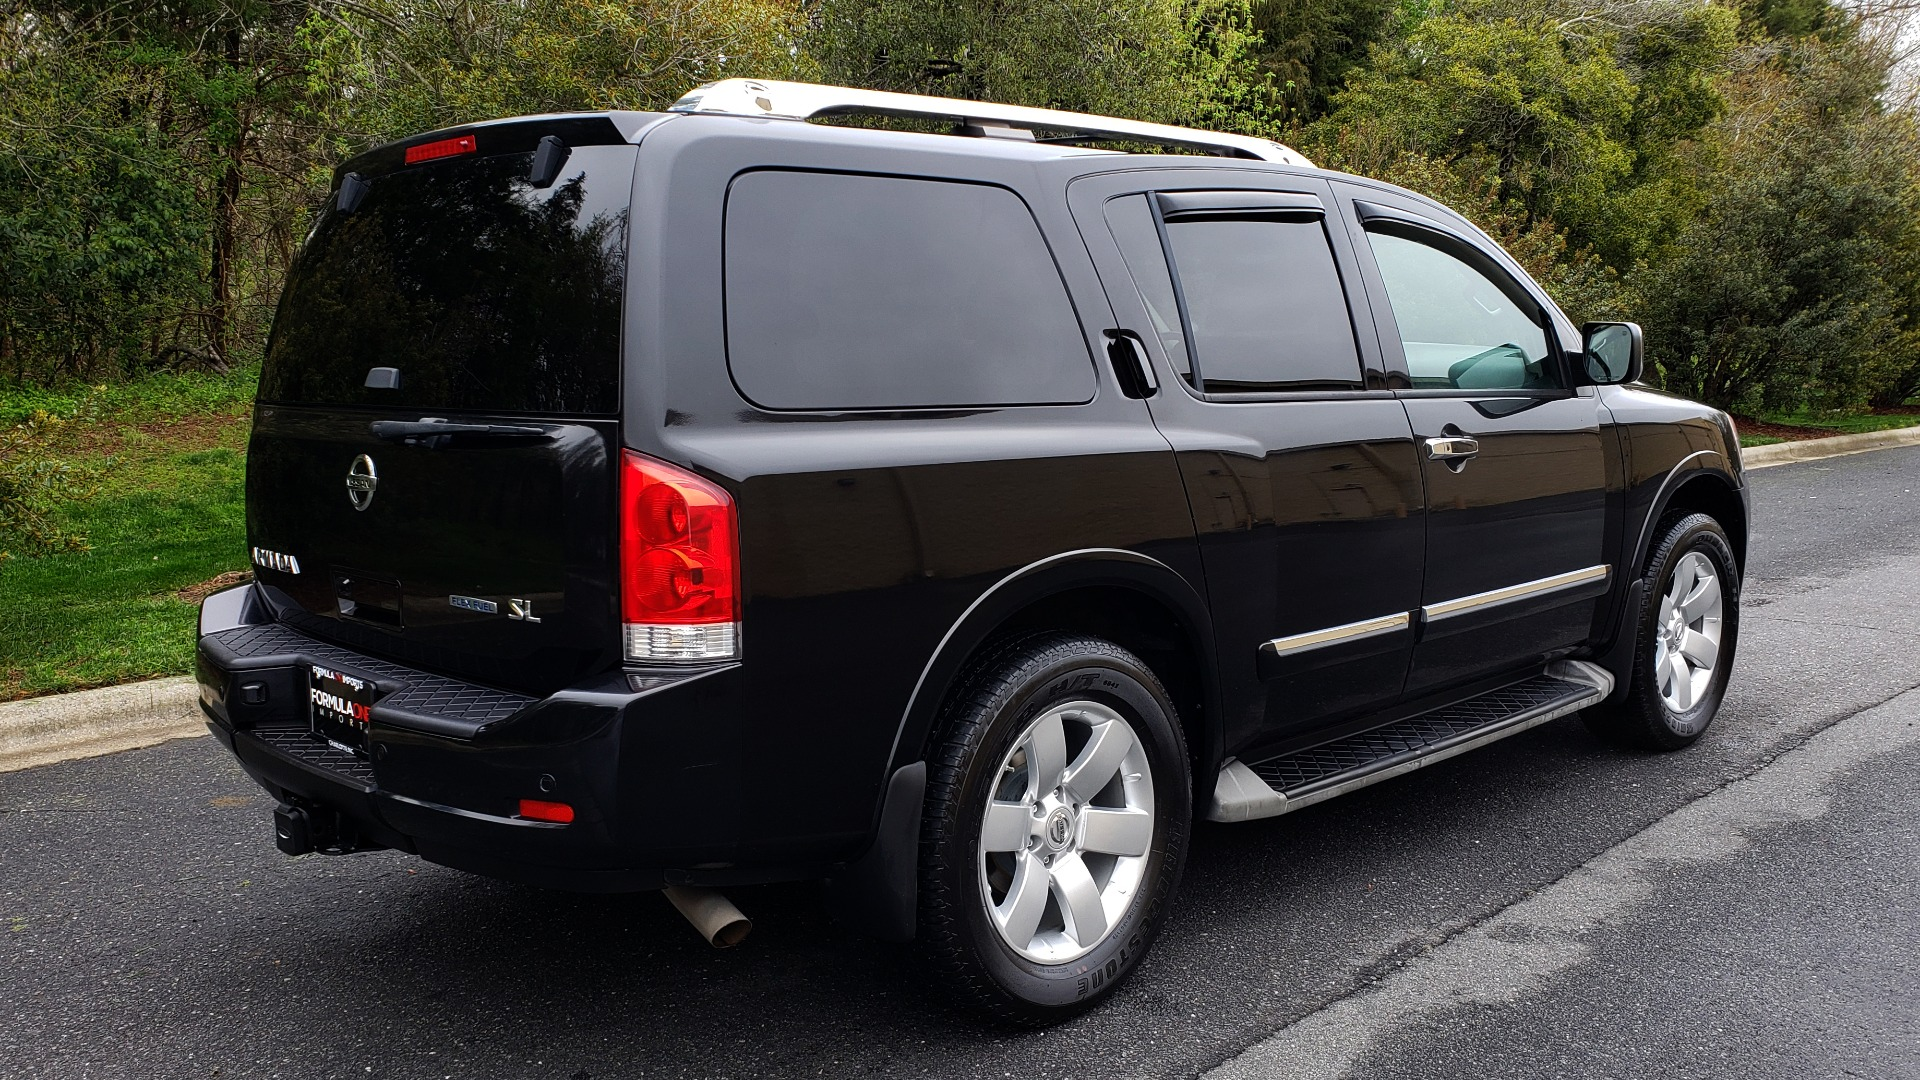 Used 2013 Nissan ARMADA SL 4WD / 5.6L V8 / NAV / SUNROOF / 3-ROW / REARVIEW for sale Sold at Formula Imports in Charlotte NC 28227 6